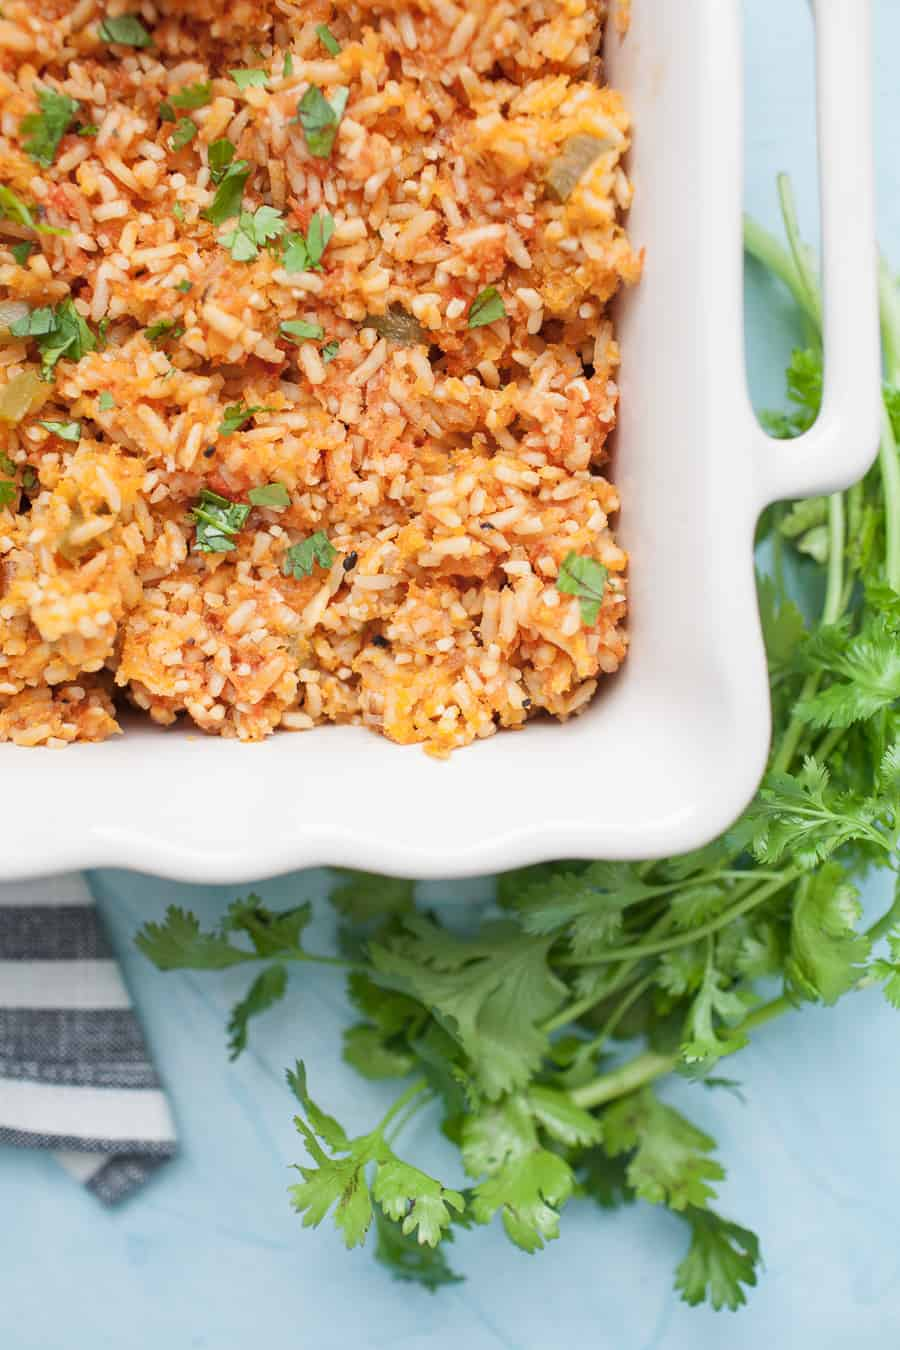 If you love Mexican food but want that restaurant quality food at home, this Traditional Mexican Rice is for you! This recipe is easy to make and bakes in the oven, which locks in the flavor and moisture that makes this recipe so delicious. You'll never go back to eating Mexican rice any other way!